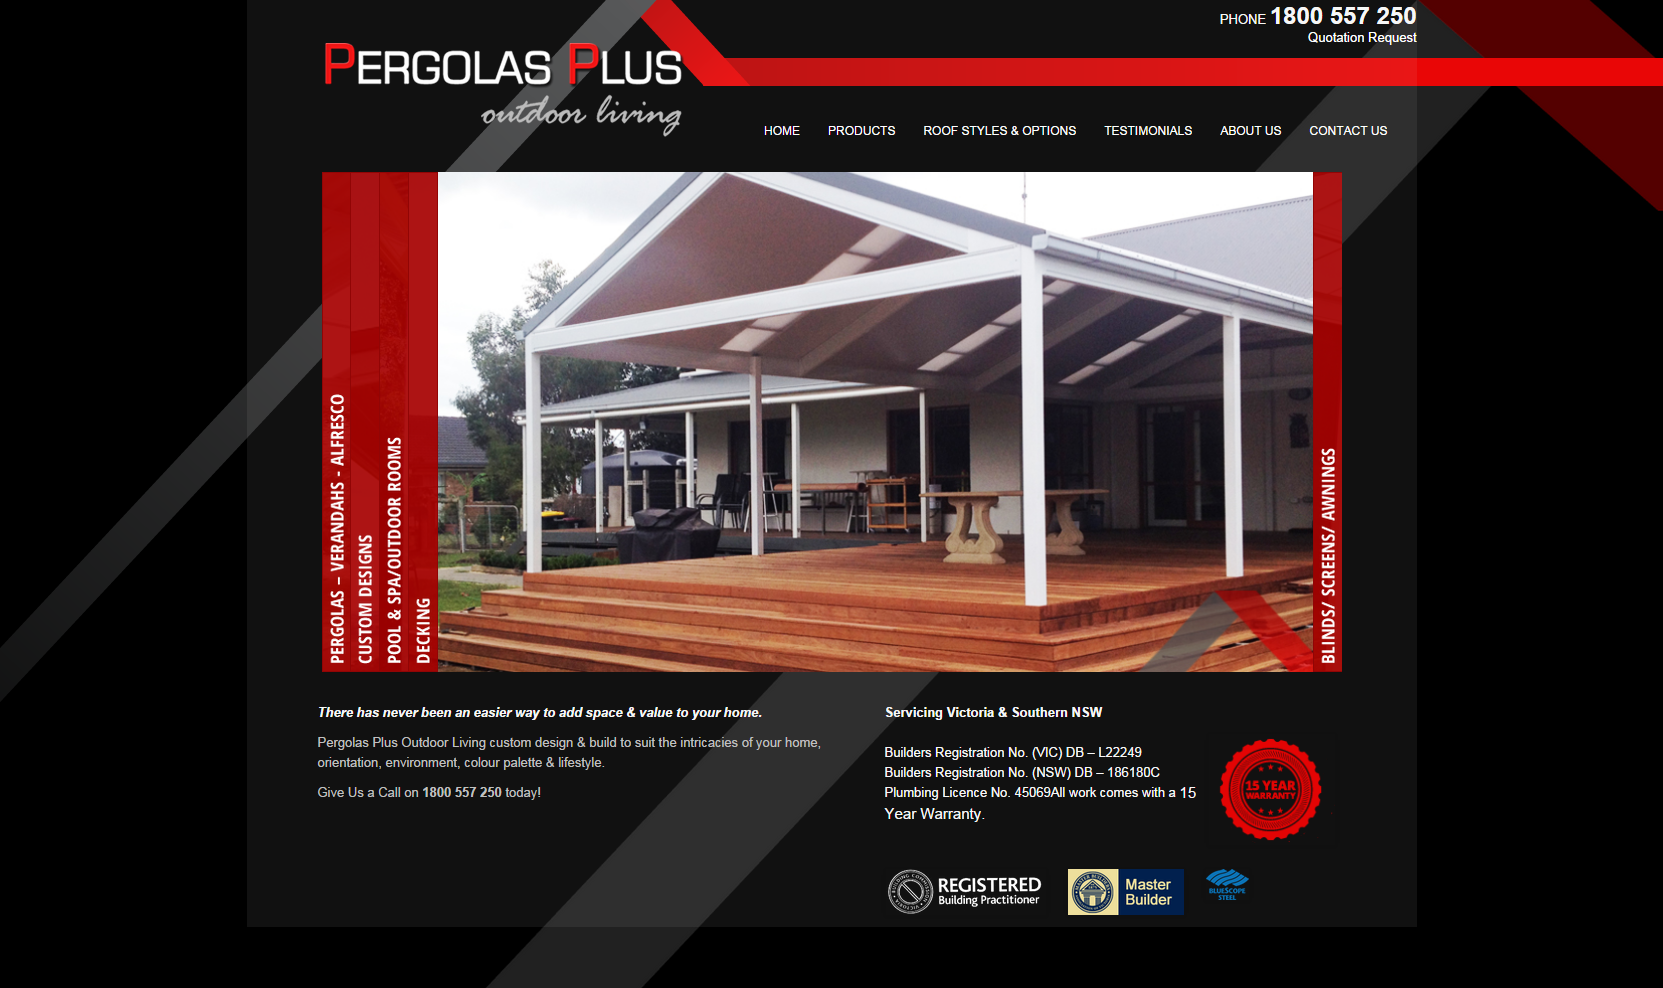 Pergolas Plus Outdoor Living